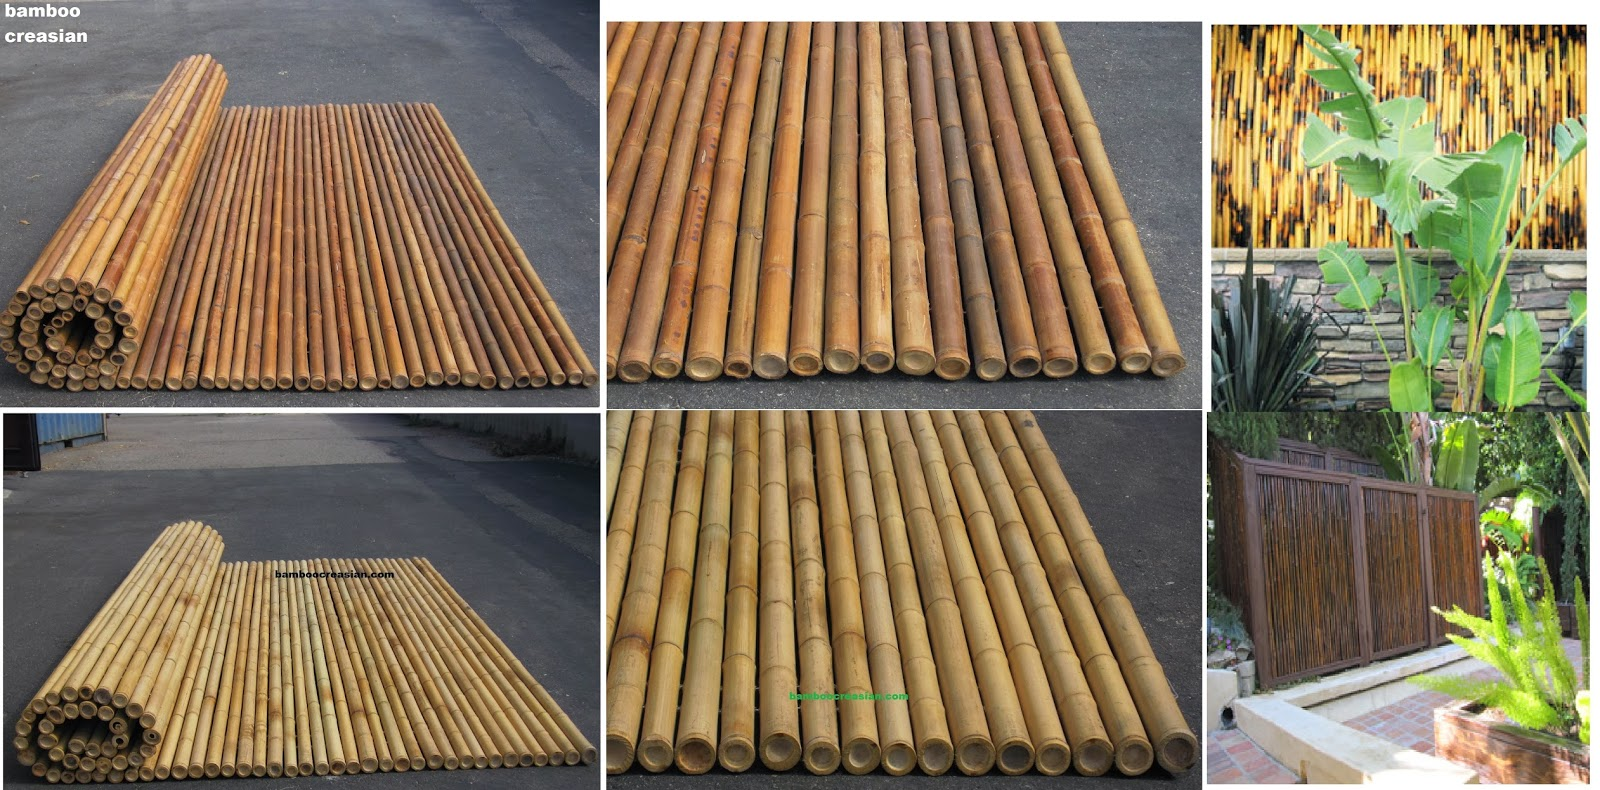 U003d#bamboo Fence Panel# Durable Bamboo Fences Sturdy #rolled Bamboo Fencing  Classical Bamboo ...